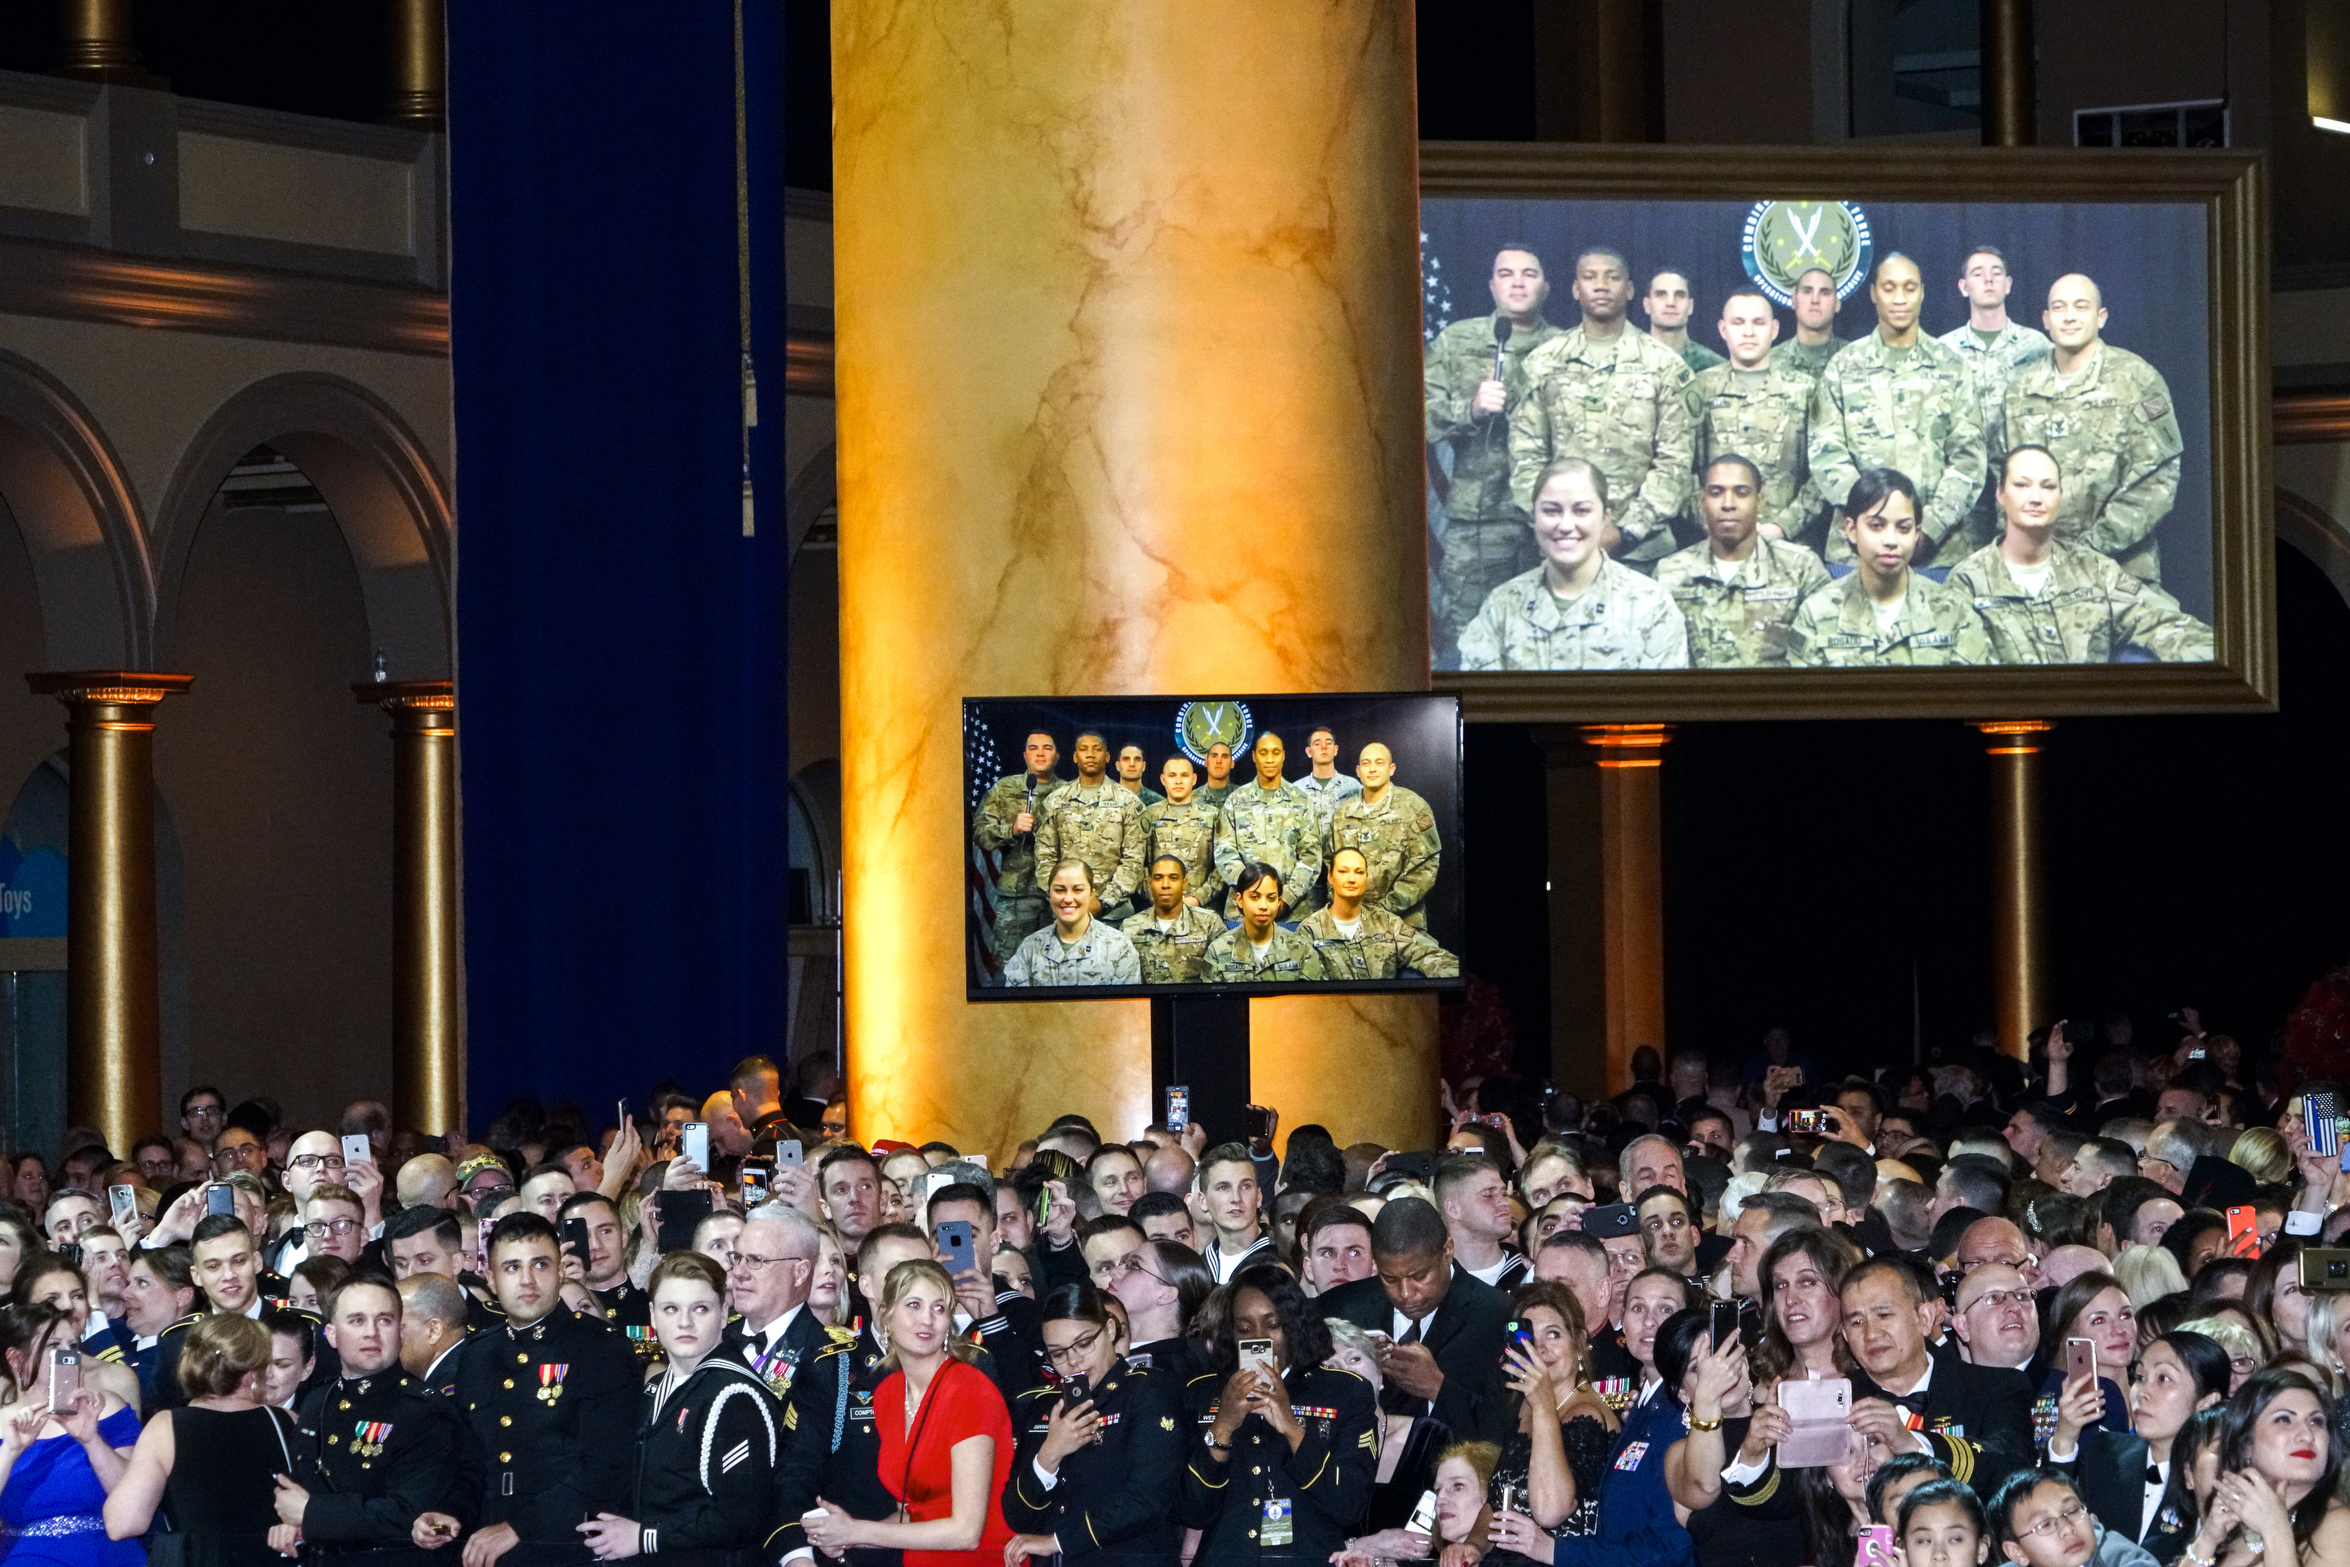 Members of the US Armed Forces wait for President Donald Trump and First Lady Melania Trump during the Salute to Our Armed Services Inaugural Ball at the National Building Museum in Washington, D.C., on Jan 20, 2017.